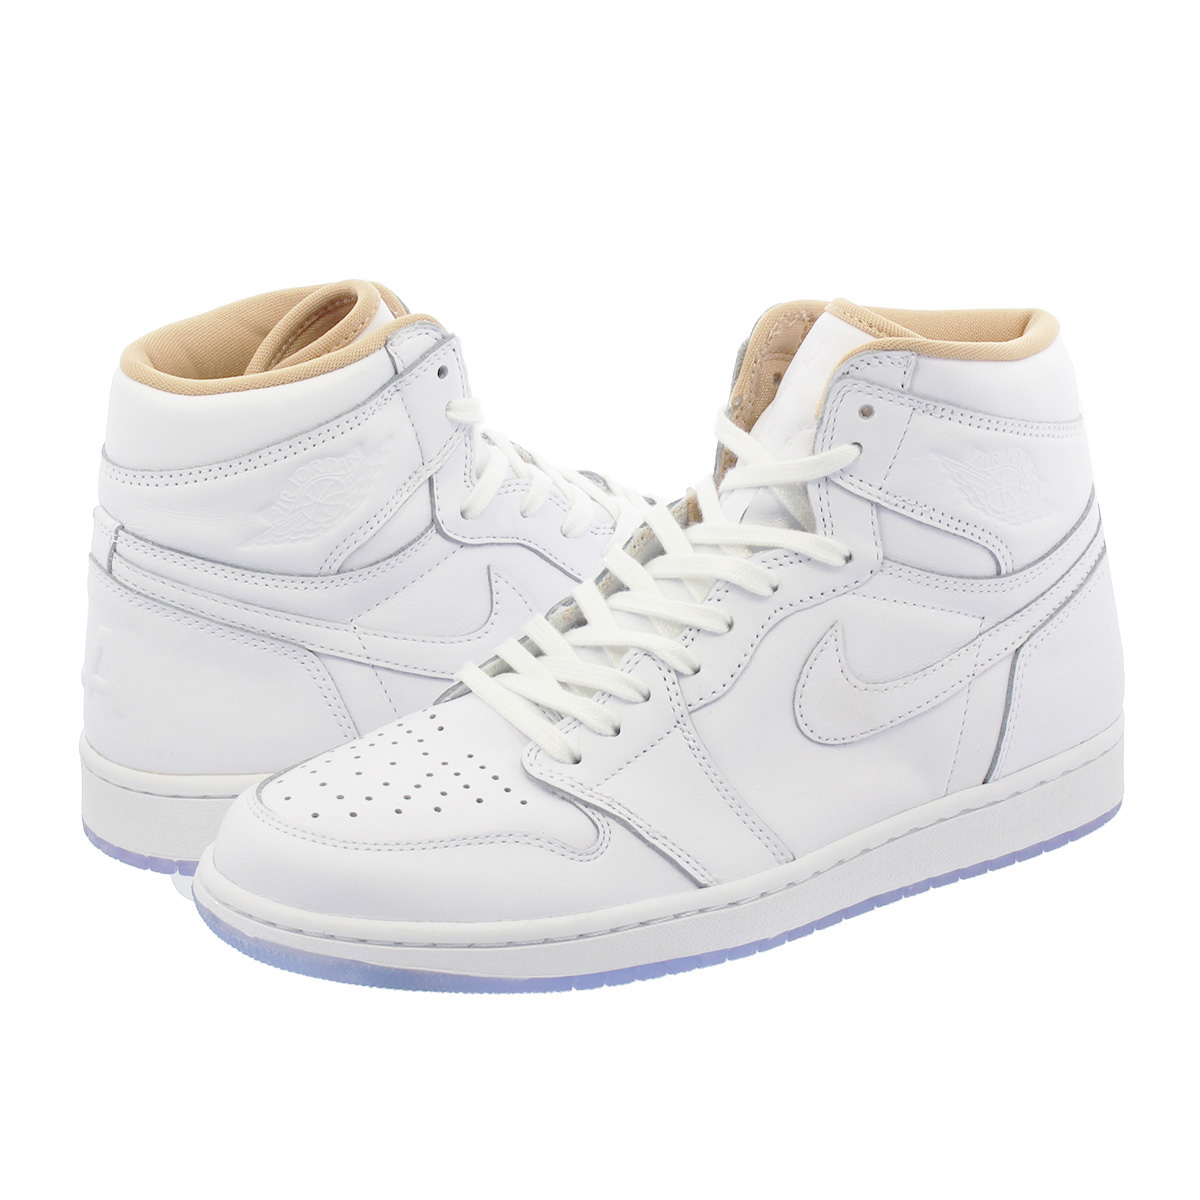 huge discount 533e5 f8b60 NIKE AIR JORDAN 1 RETRO HIGH LA Nike Air Jordan 1 nostalgic high LA  WHITE/METALLC GOLD 819,012-130